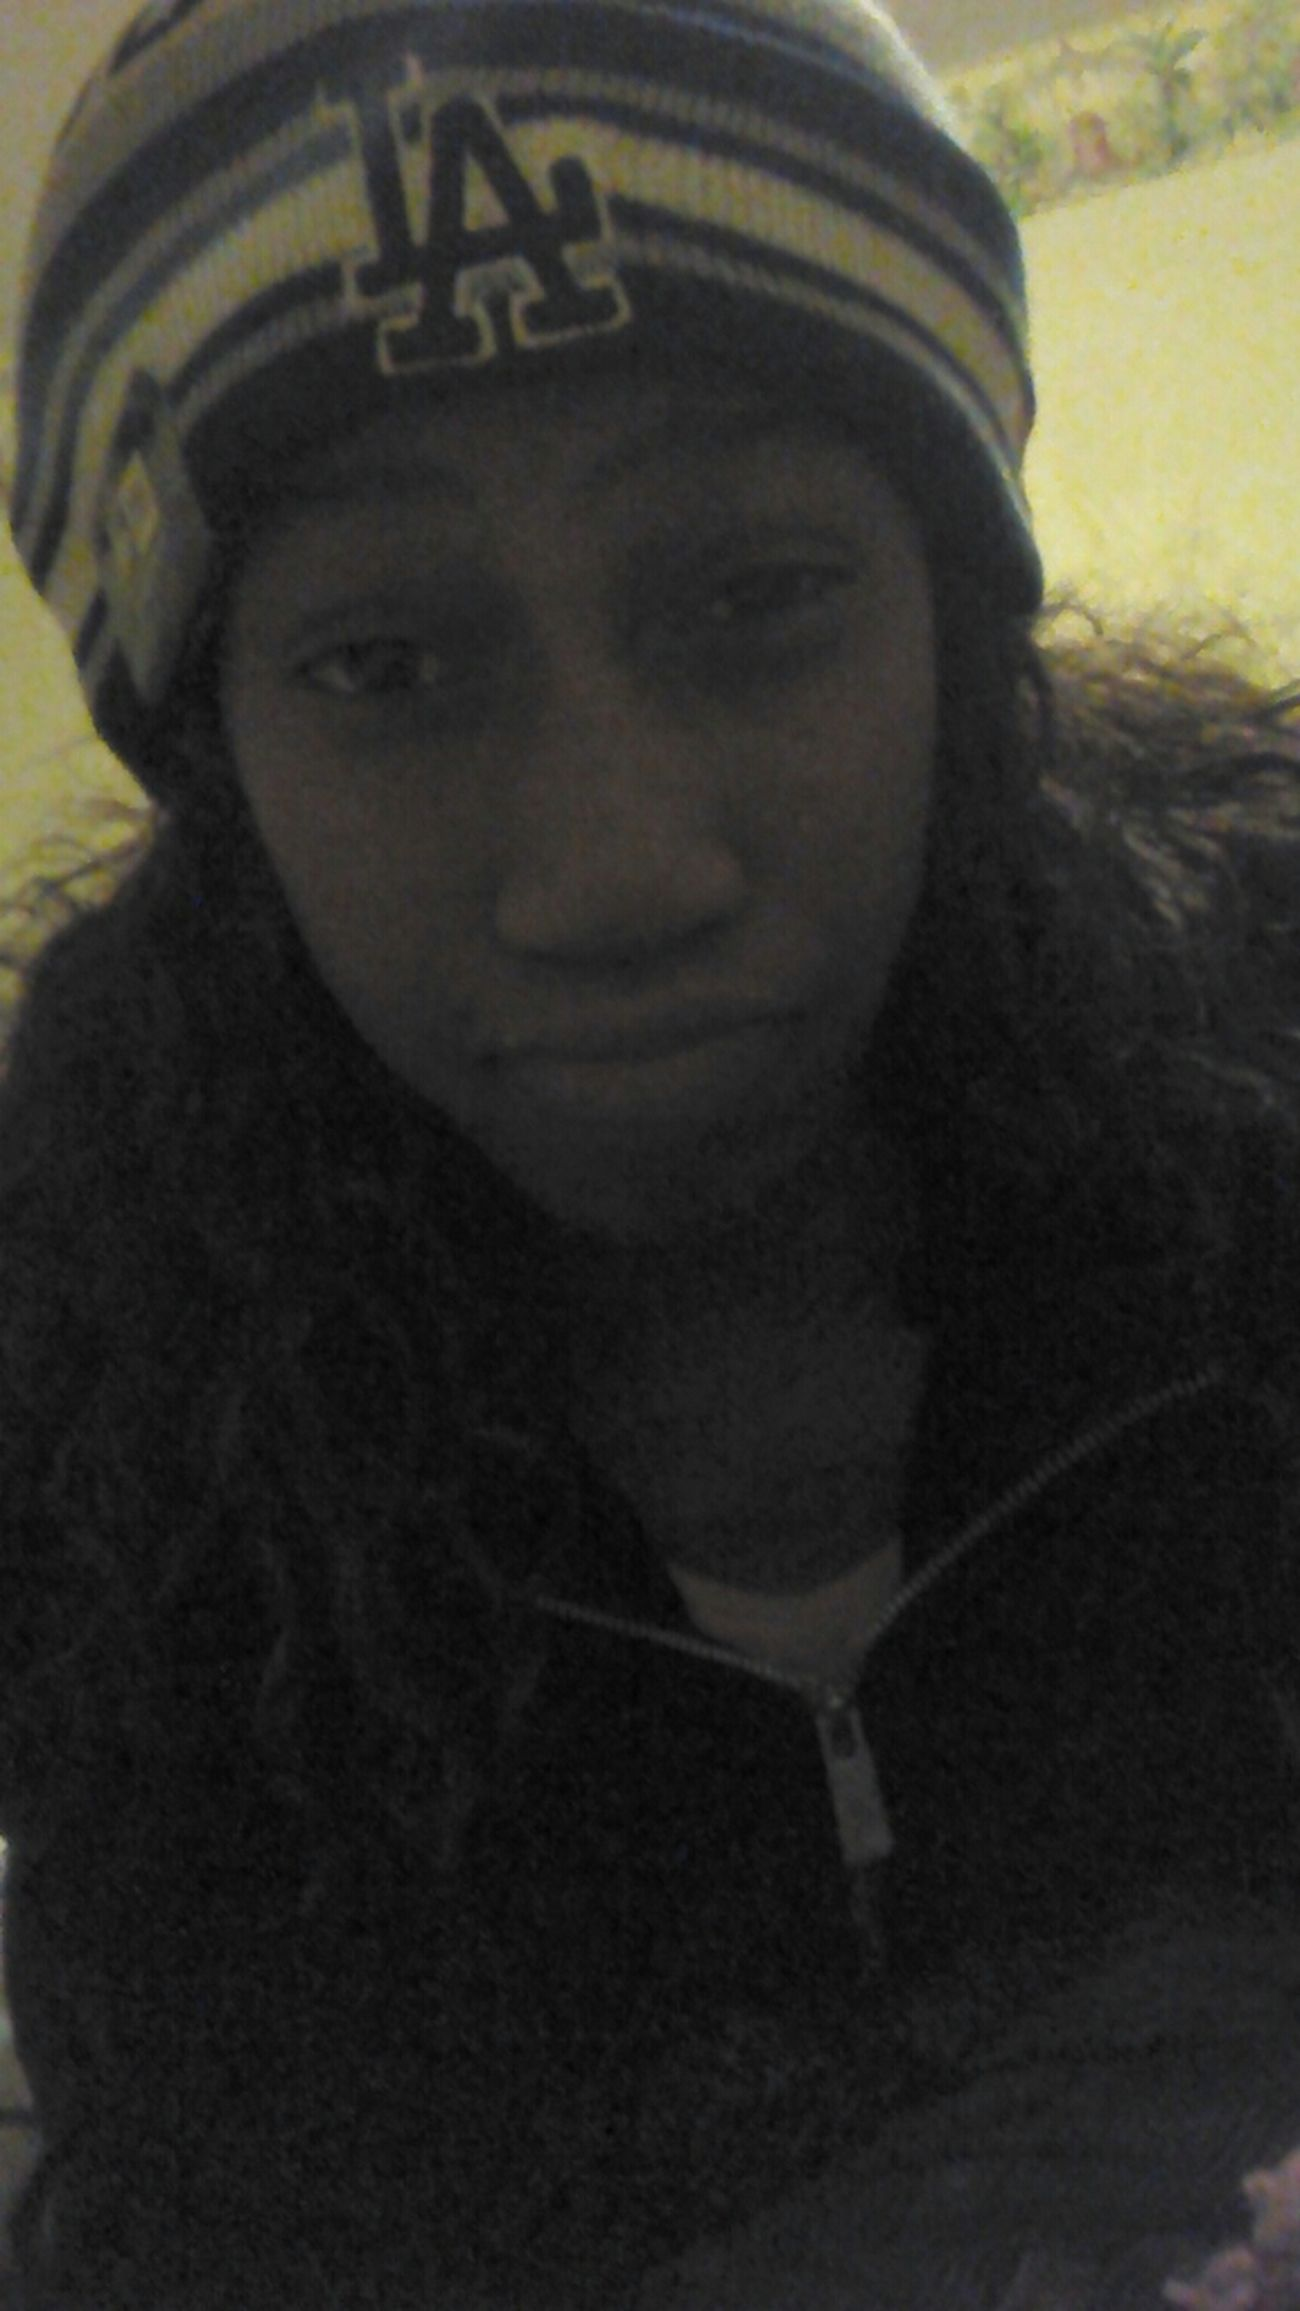 wit my bf beanie on